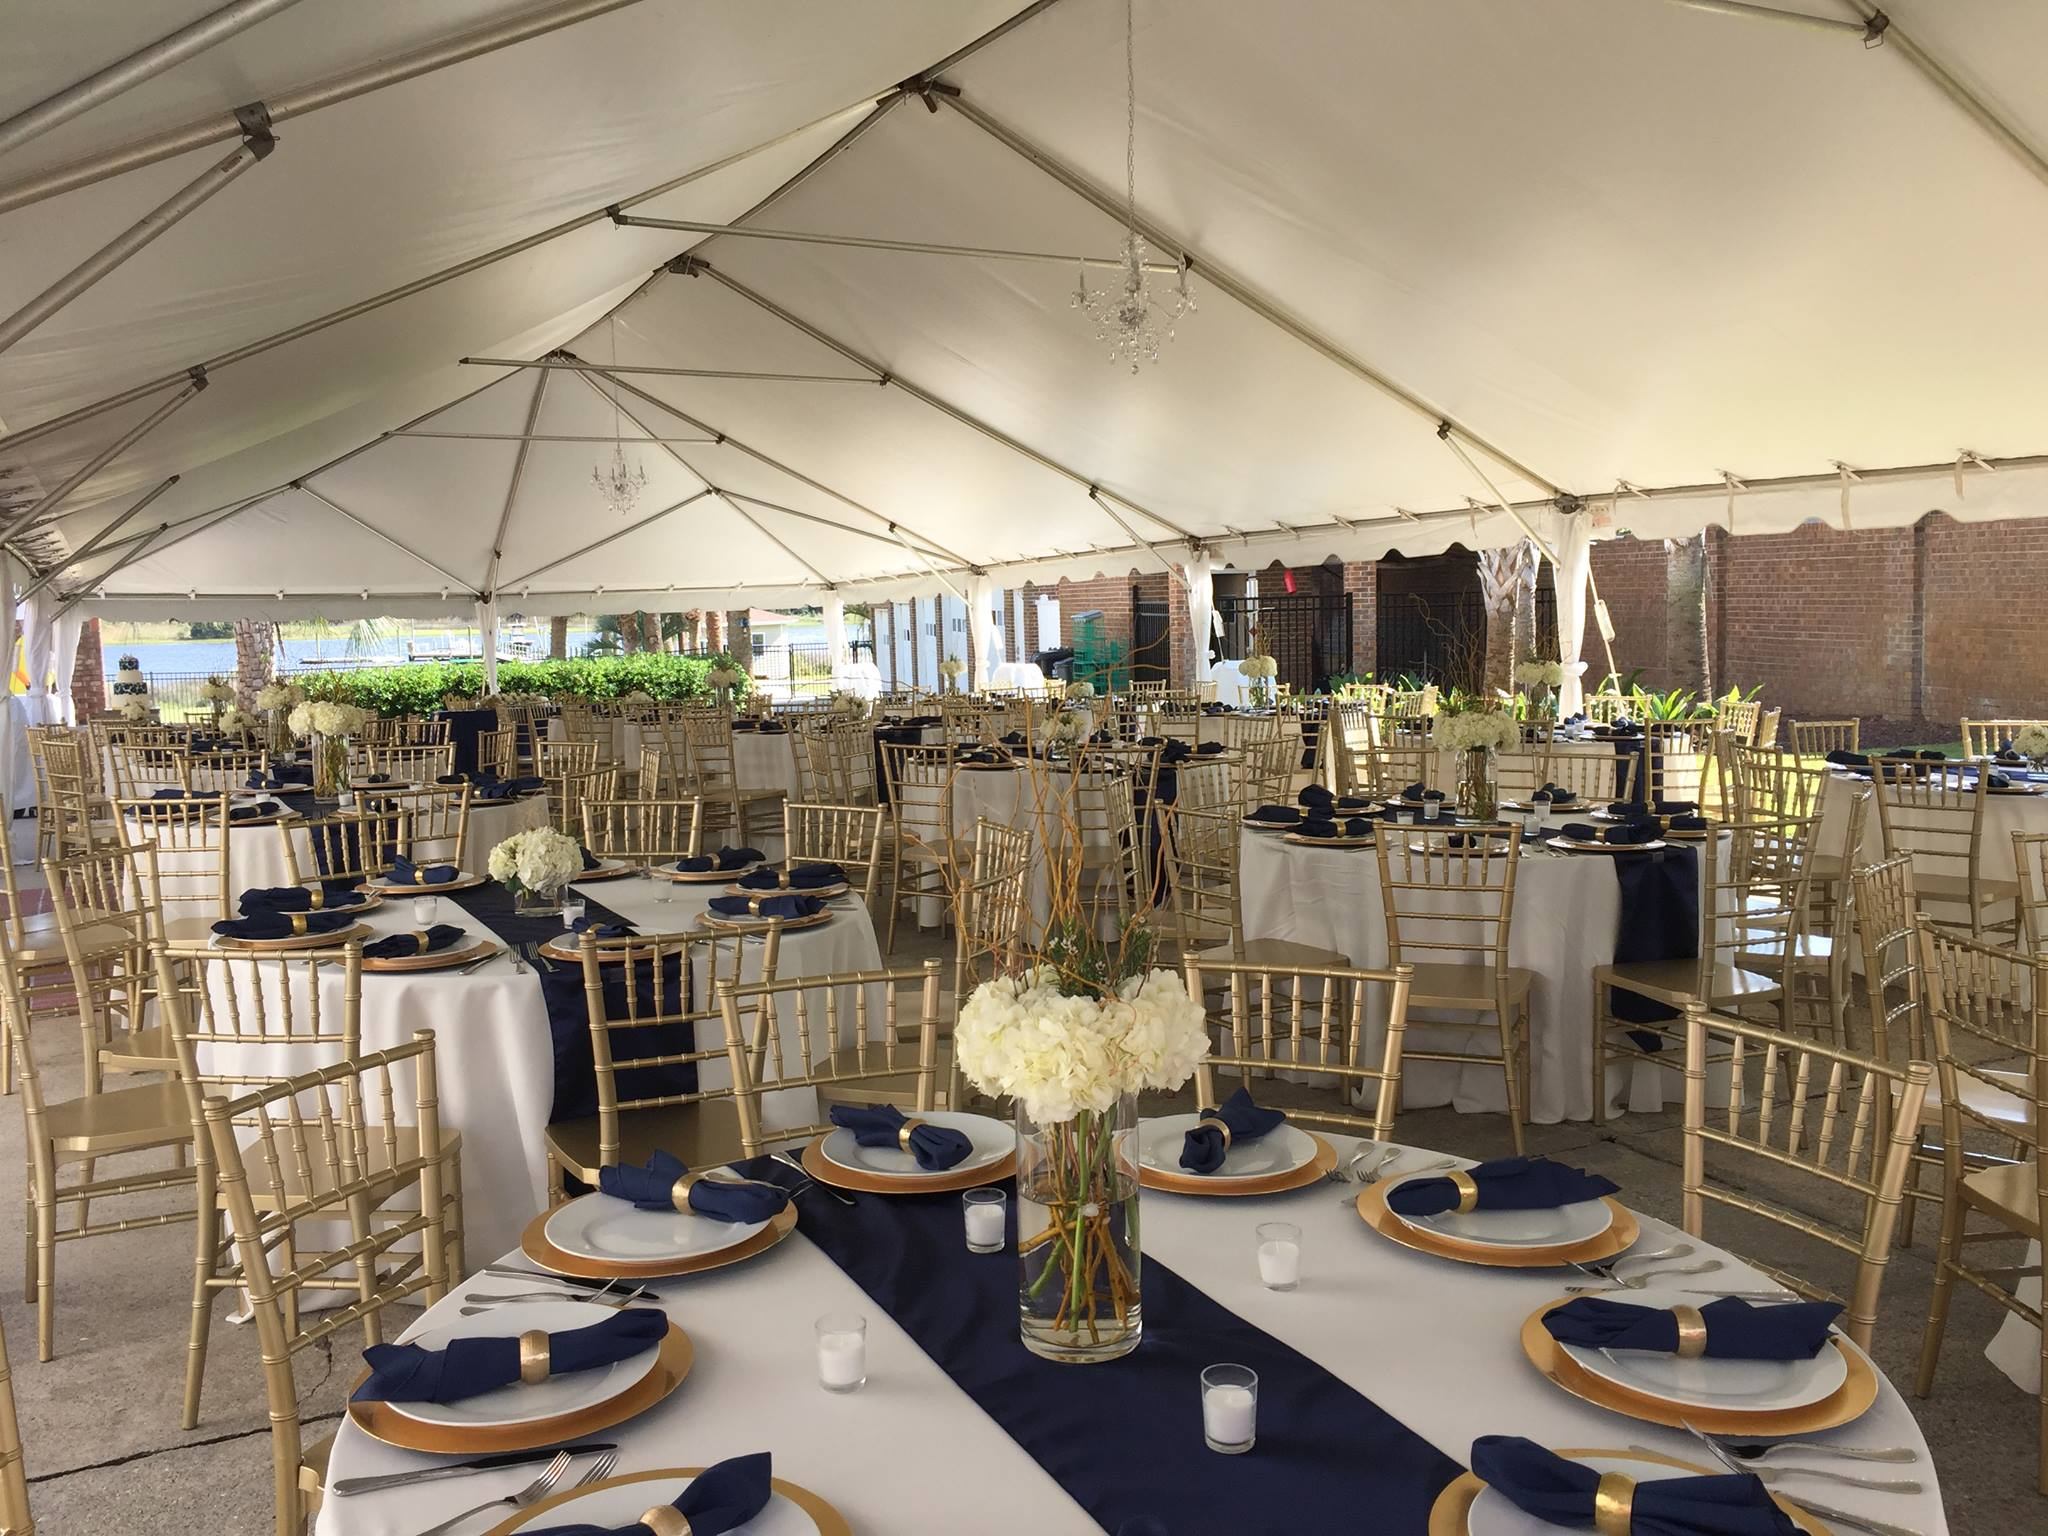 crystal-coast-tent-and-event-rentals-5.jpg